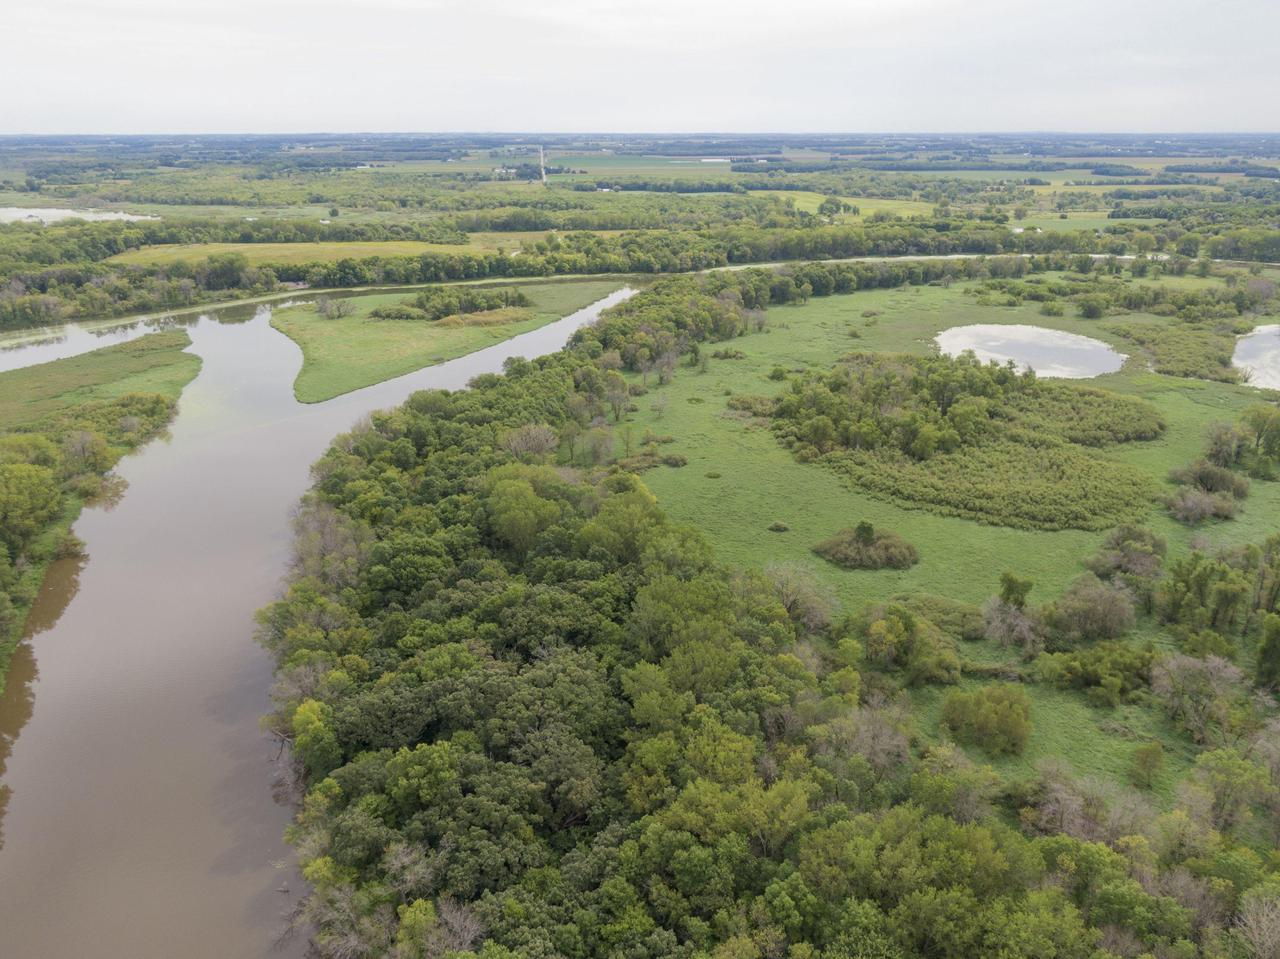 Hunters, looking for hunting land? Here's an incredible opportunity! Approximately 77 +/- acres of prime hunting land for deer, turkey, waterfowl.  Rural, low and wooded land is the right property for hunting. In the Mud Lake wildlife vicinity, nearby Chub Lake, an abundance of Crawfish River frontage, and an island all mingled in the area of a migratory flyway attracting a variety of seasonal birds.  This property is the only private Chub Lake frontage, approx. 1400+ ft. A hunter's dream come true. There is a building site that has been rezoned and approved for building. Perc test has already been completed.  Several acres are currently used for agriculture and the 2020 crops are not included in the sale price and grower must be allowed access to harvest 2020 crops. Multiple tax parcels